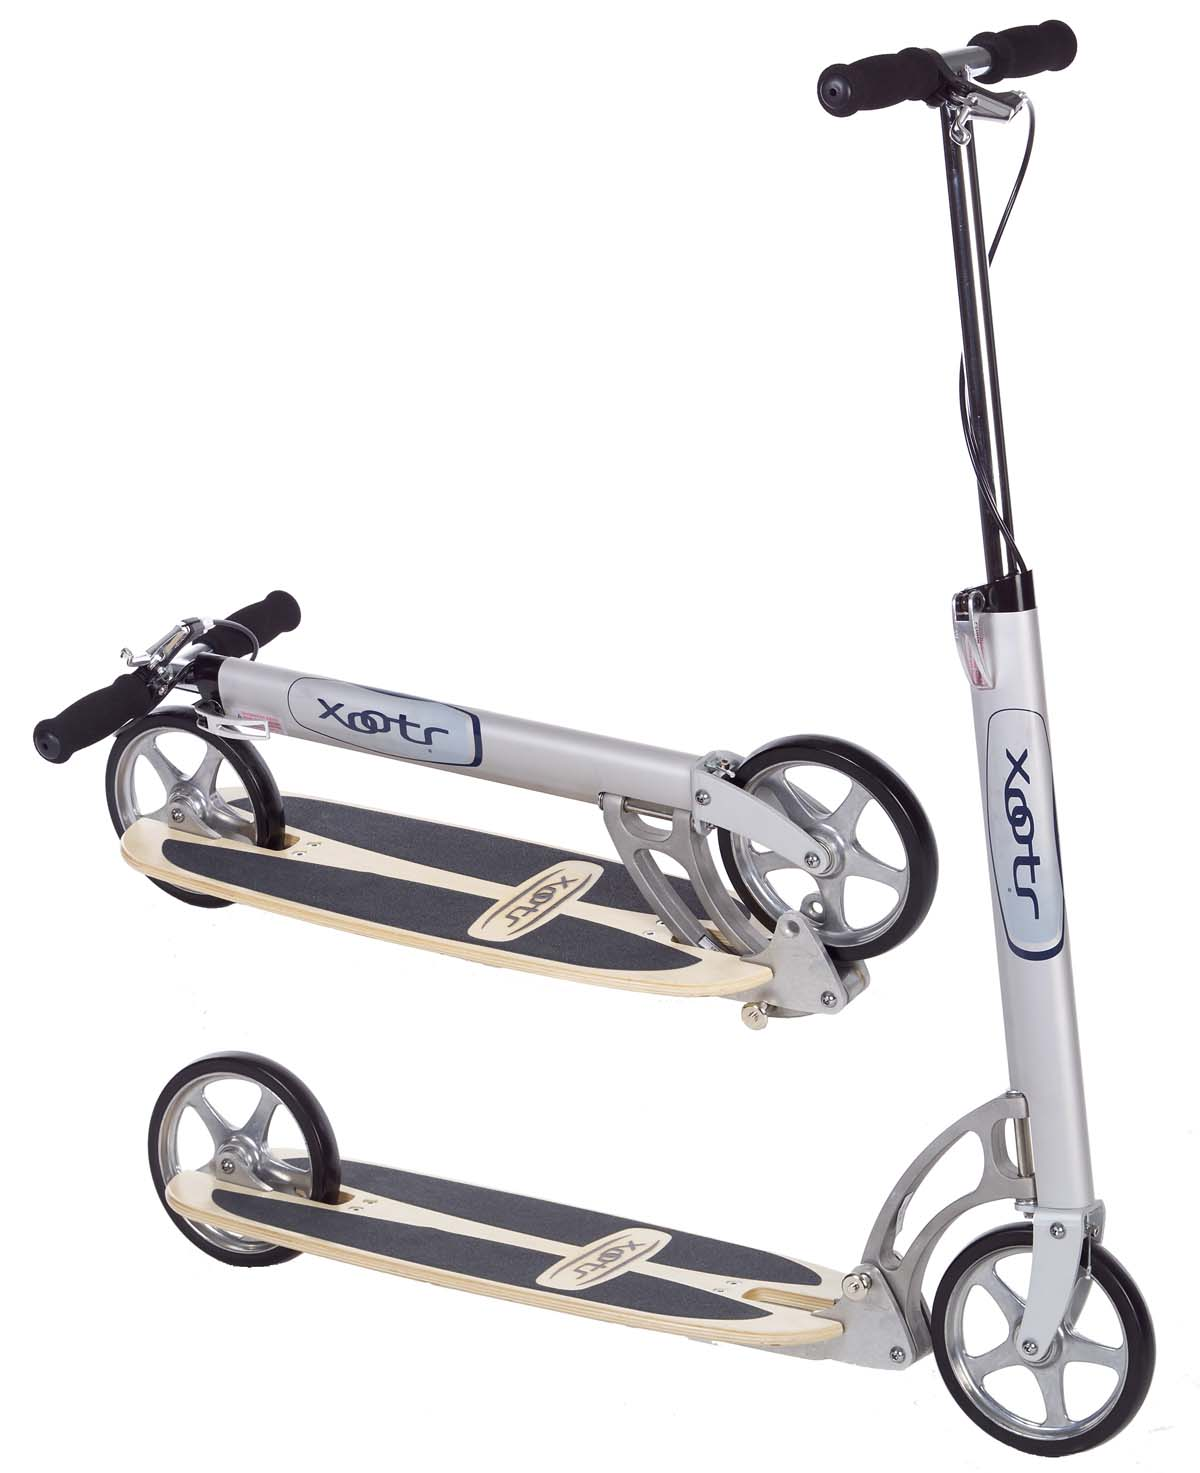 http://www.prlog.org/12077013-xootr-push-scooter-now-available-in-marketplace.html